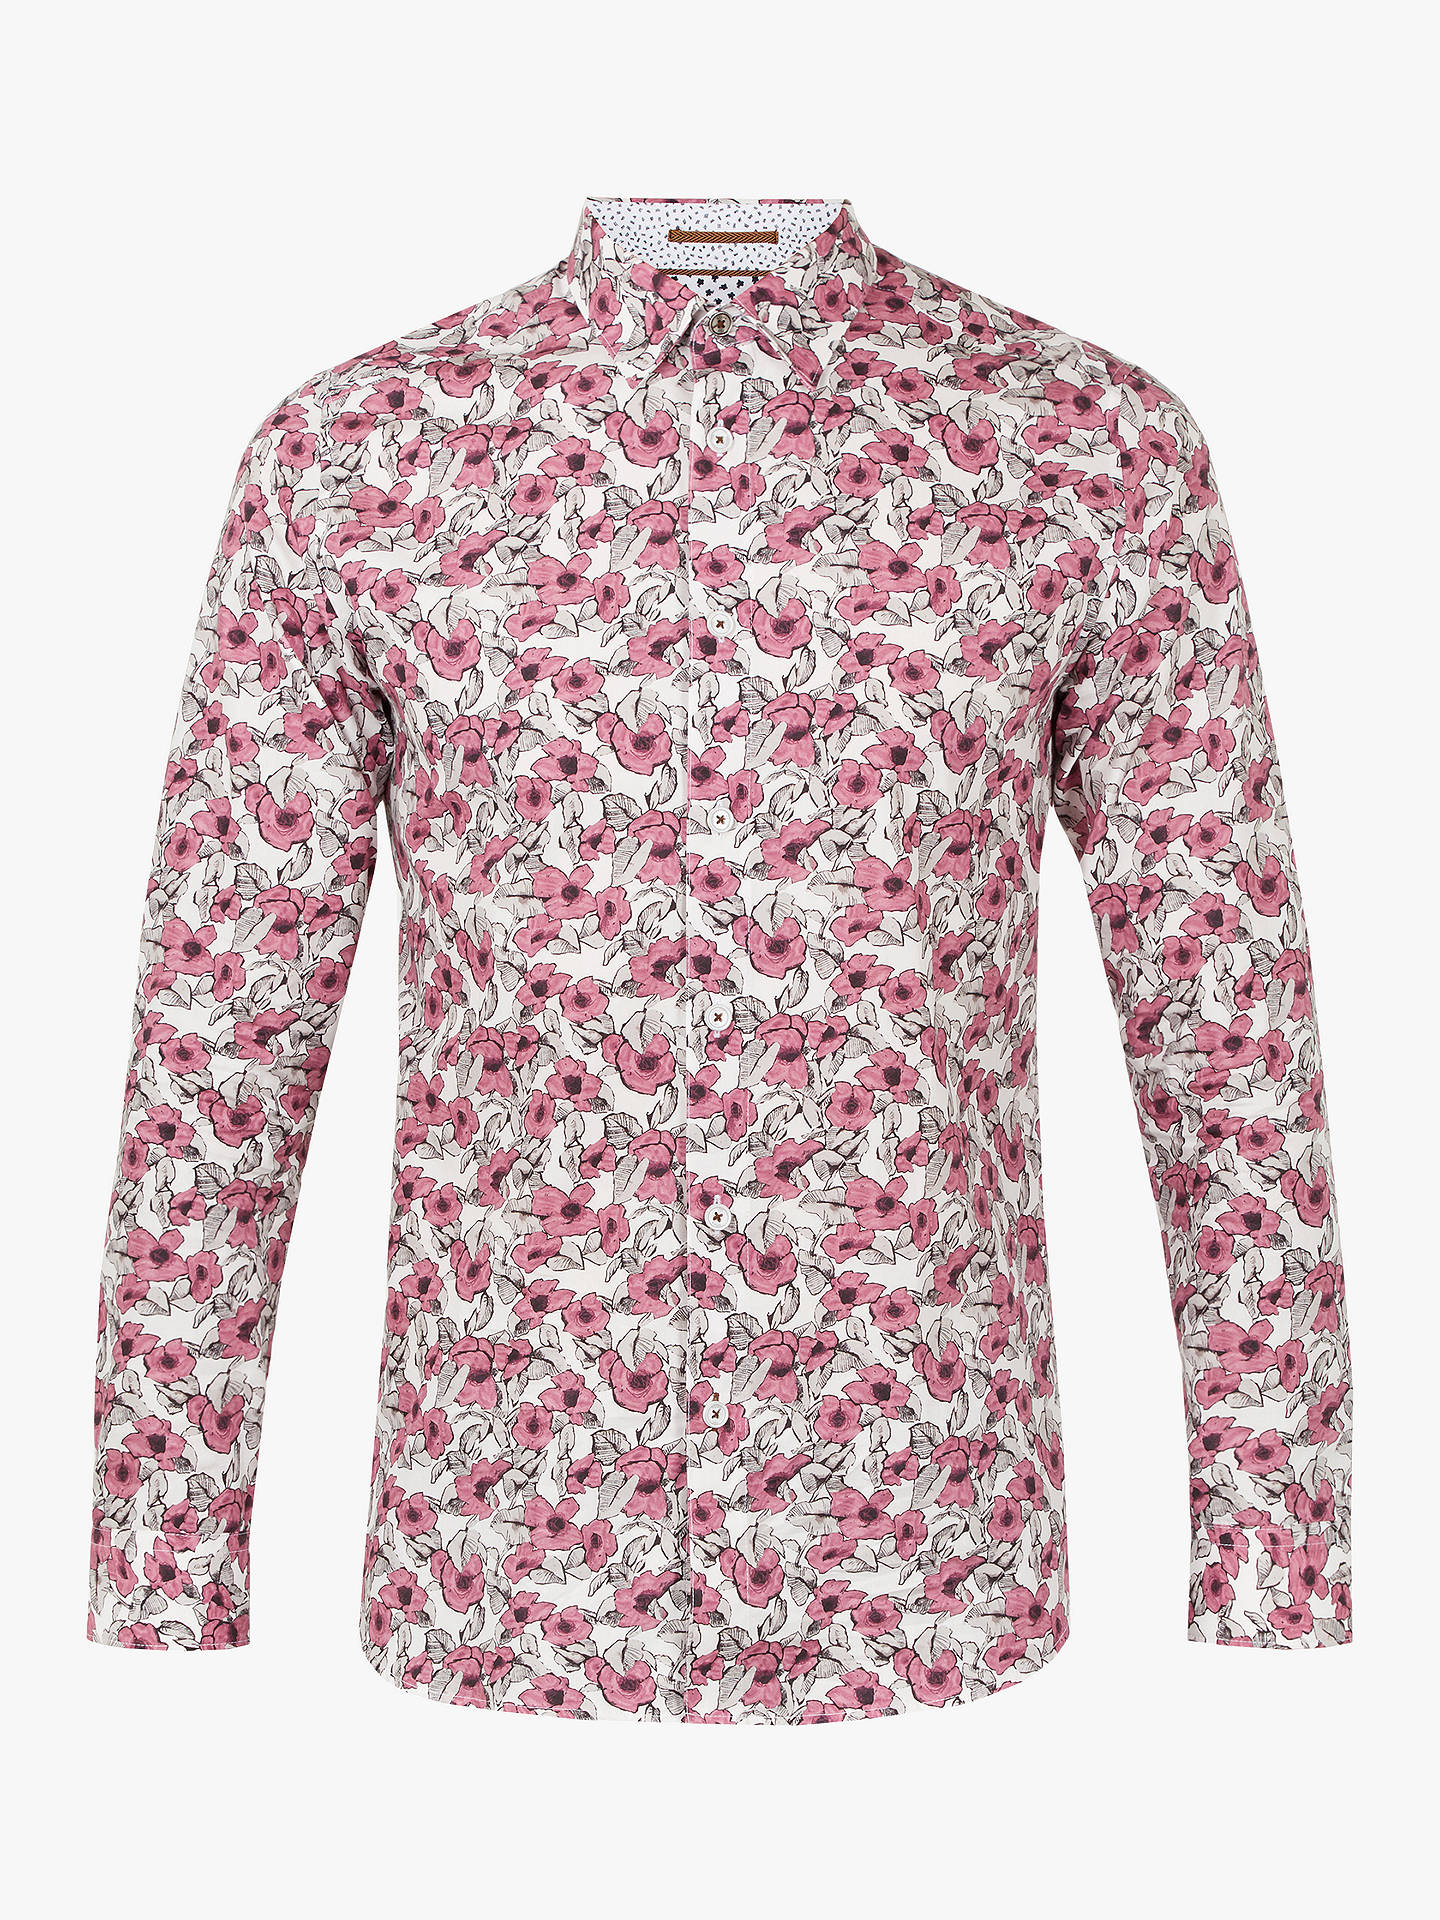 cc095715c2bf Buy Ted Baker Croydon Long Sleeve Floral Shirt